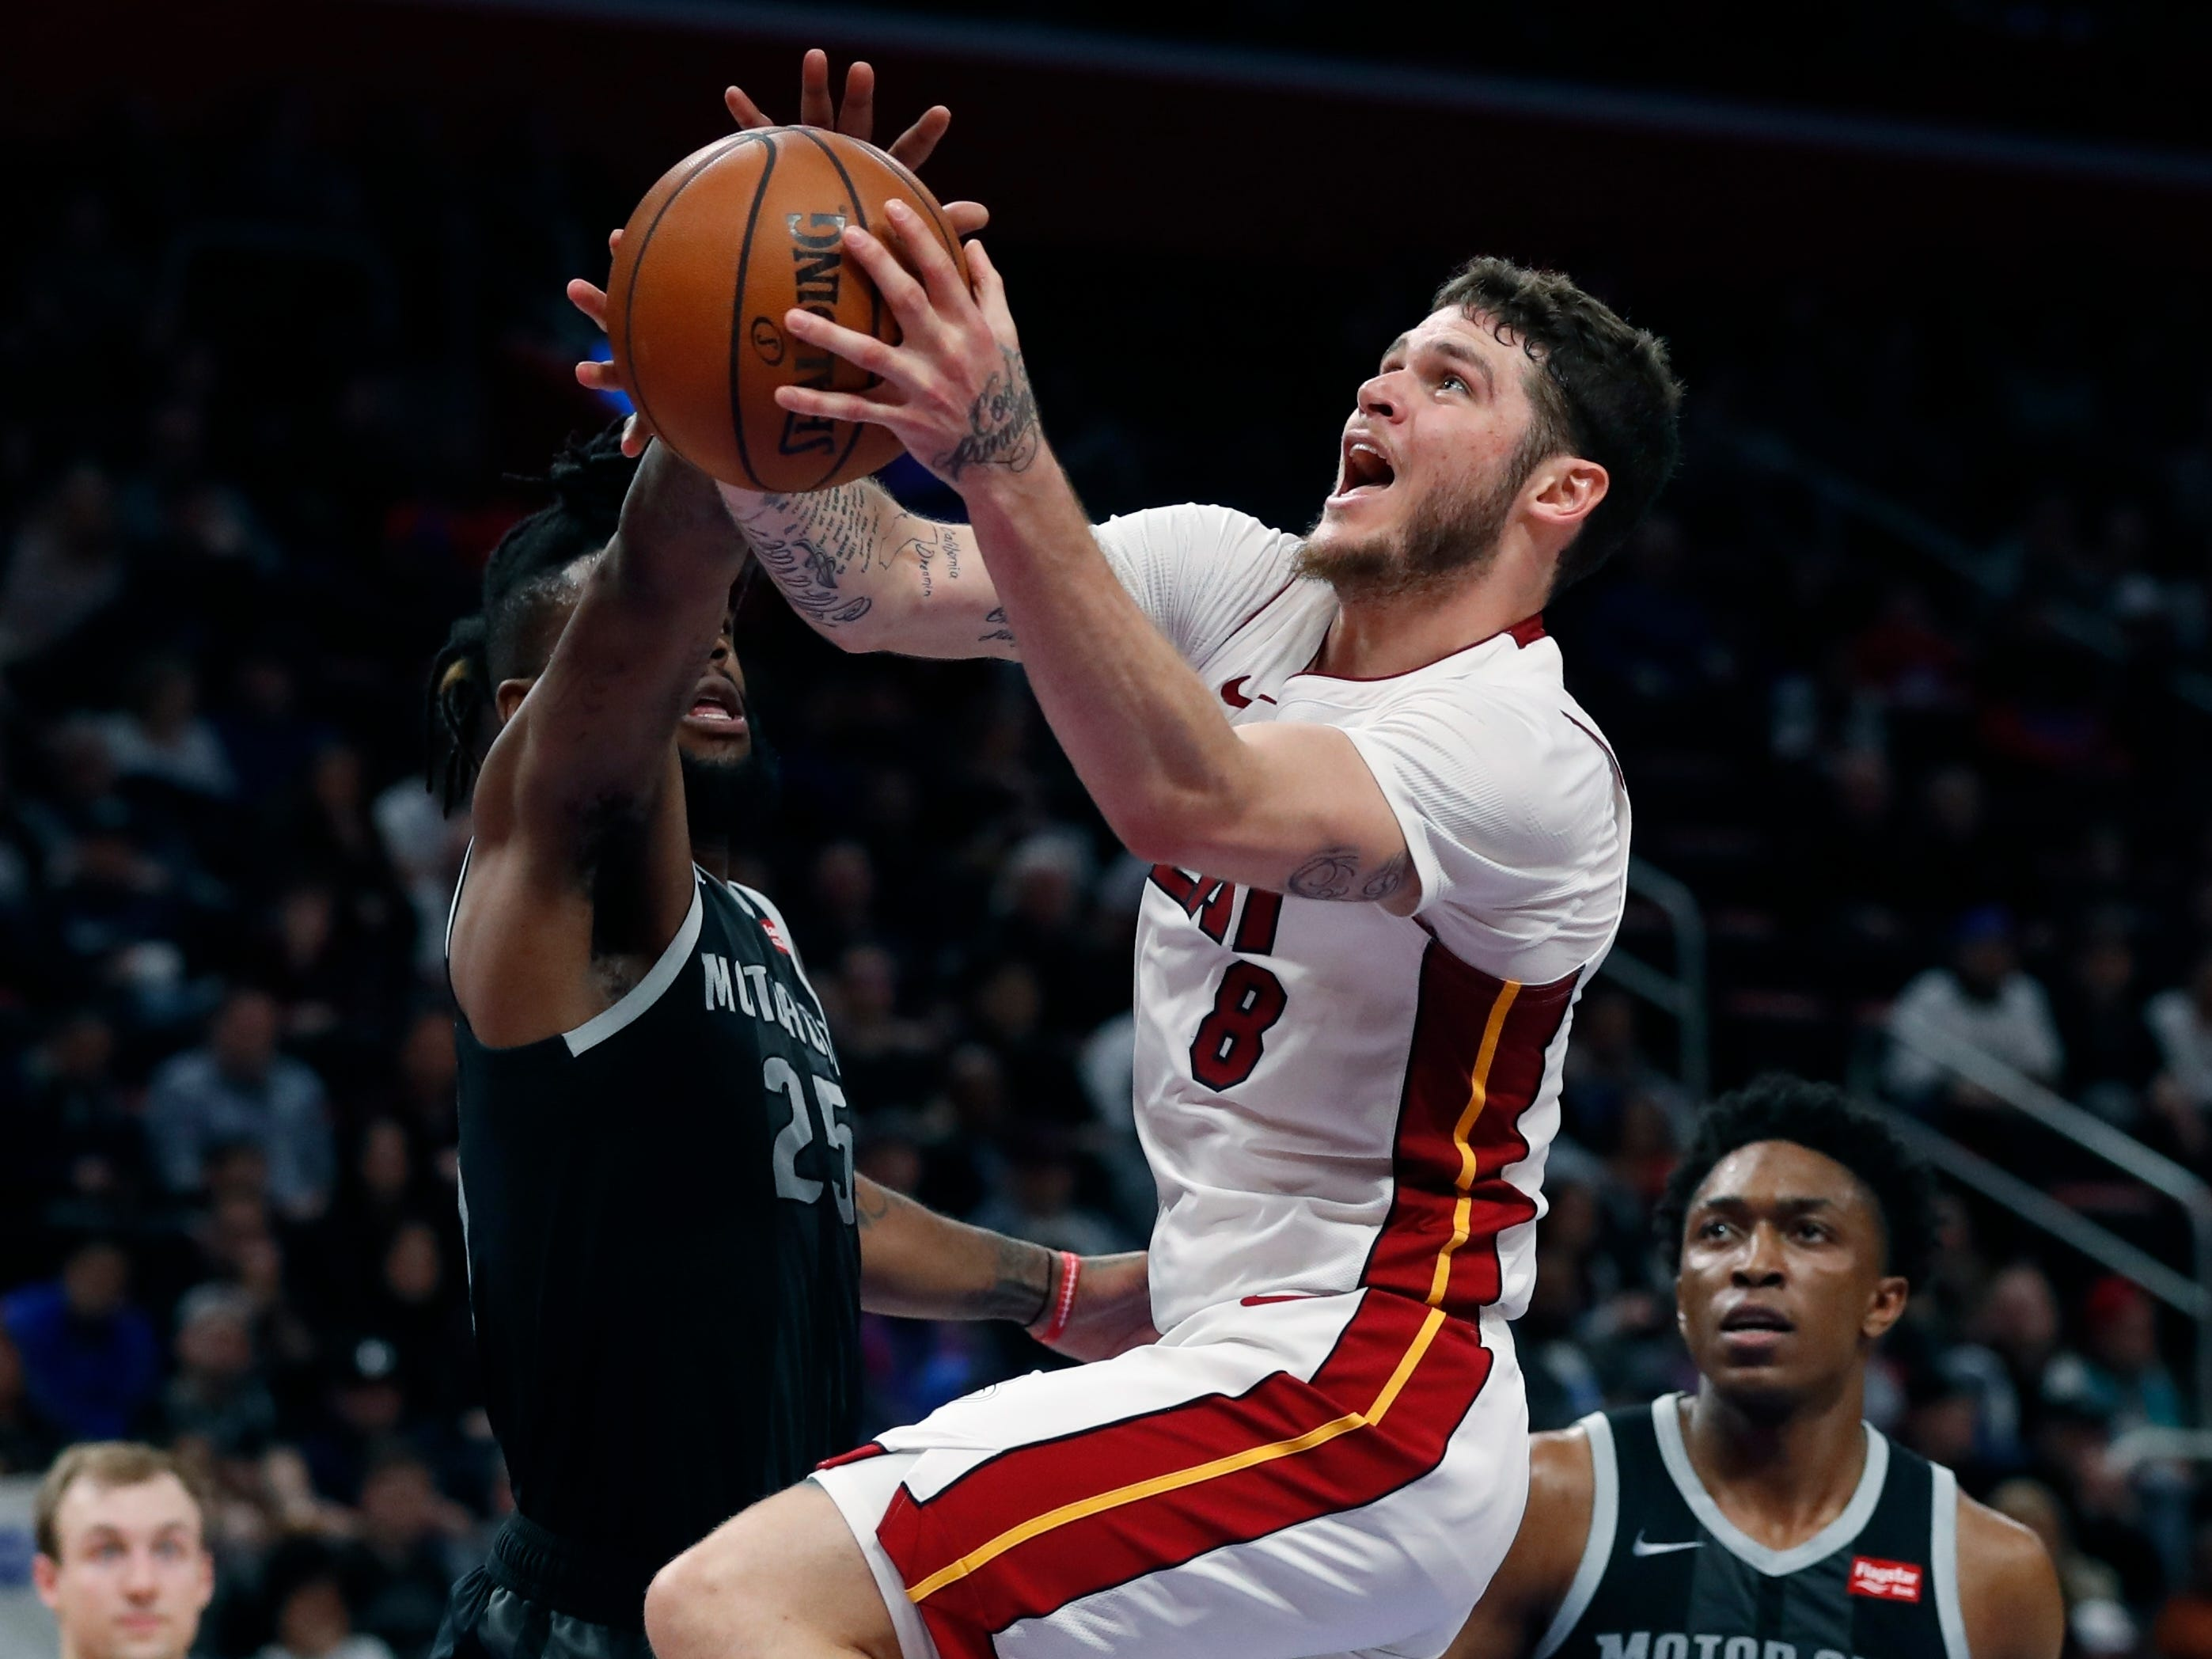 Miami Heat guard Tyler Johnson (8) makes a layup as Detroit Pistons guard Reggie Bullock (25) defends during the second half.